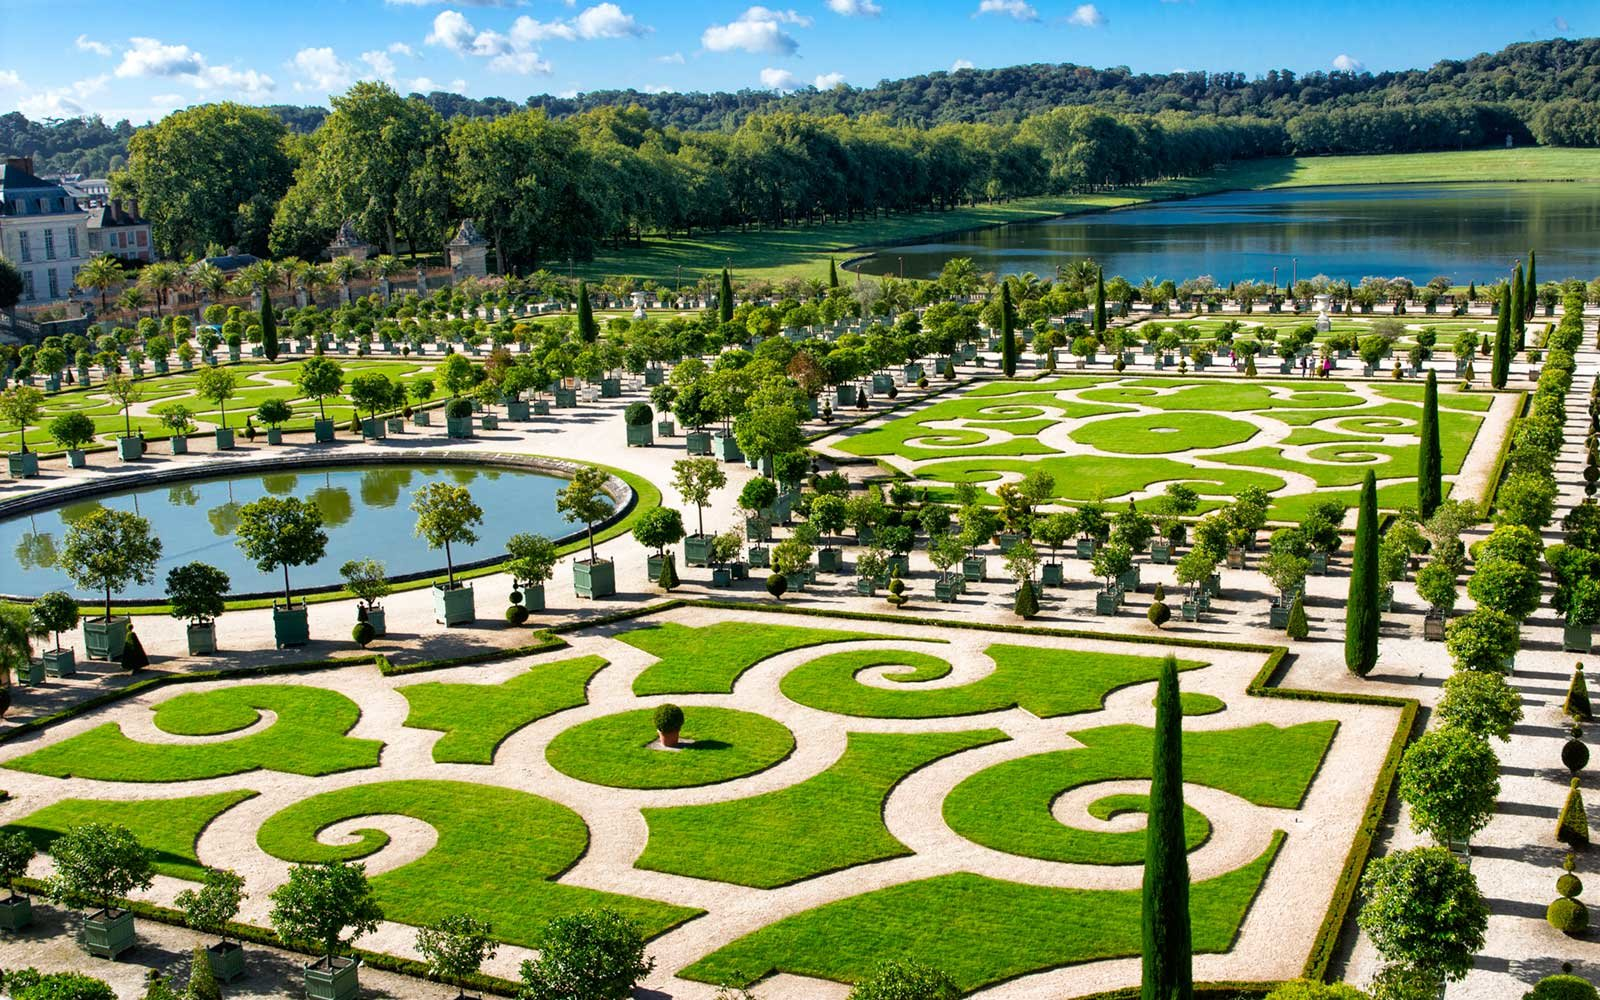 The Orangerie, Gardens of Versailles, France